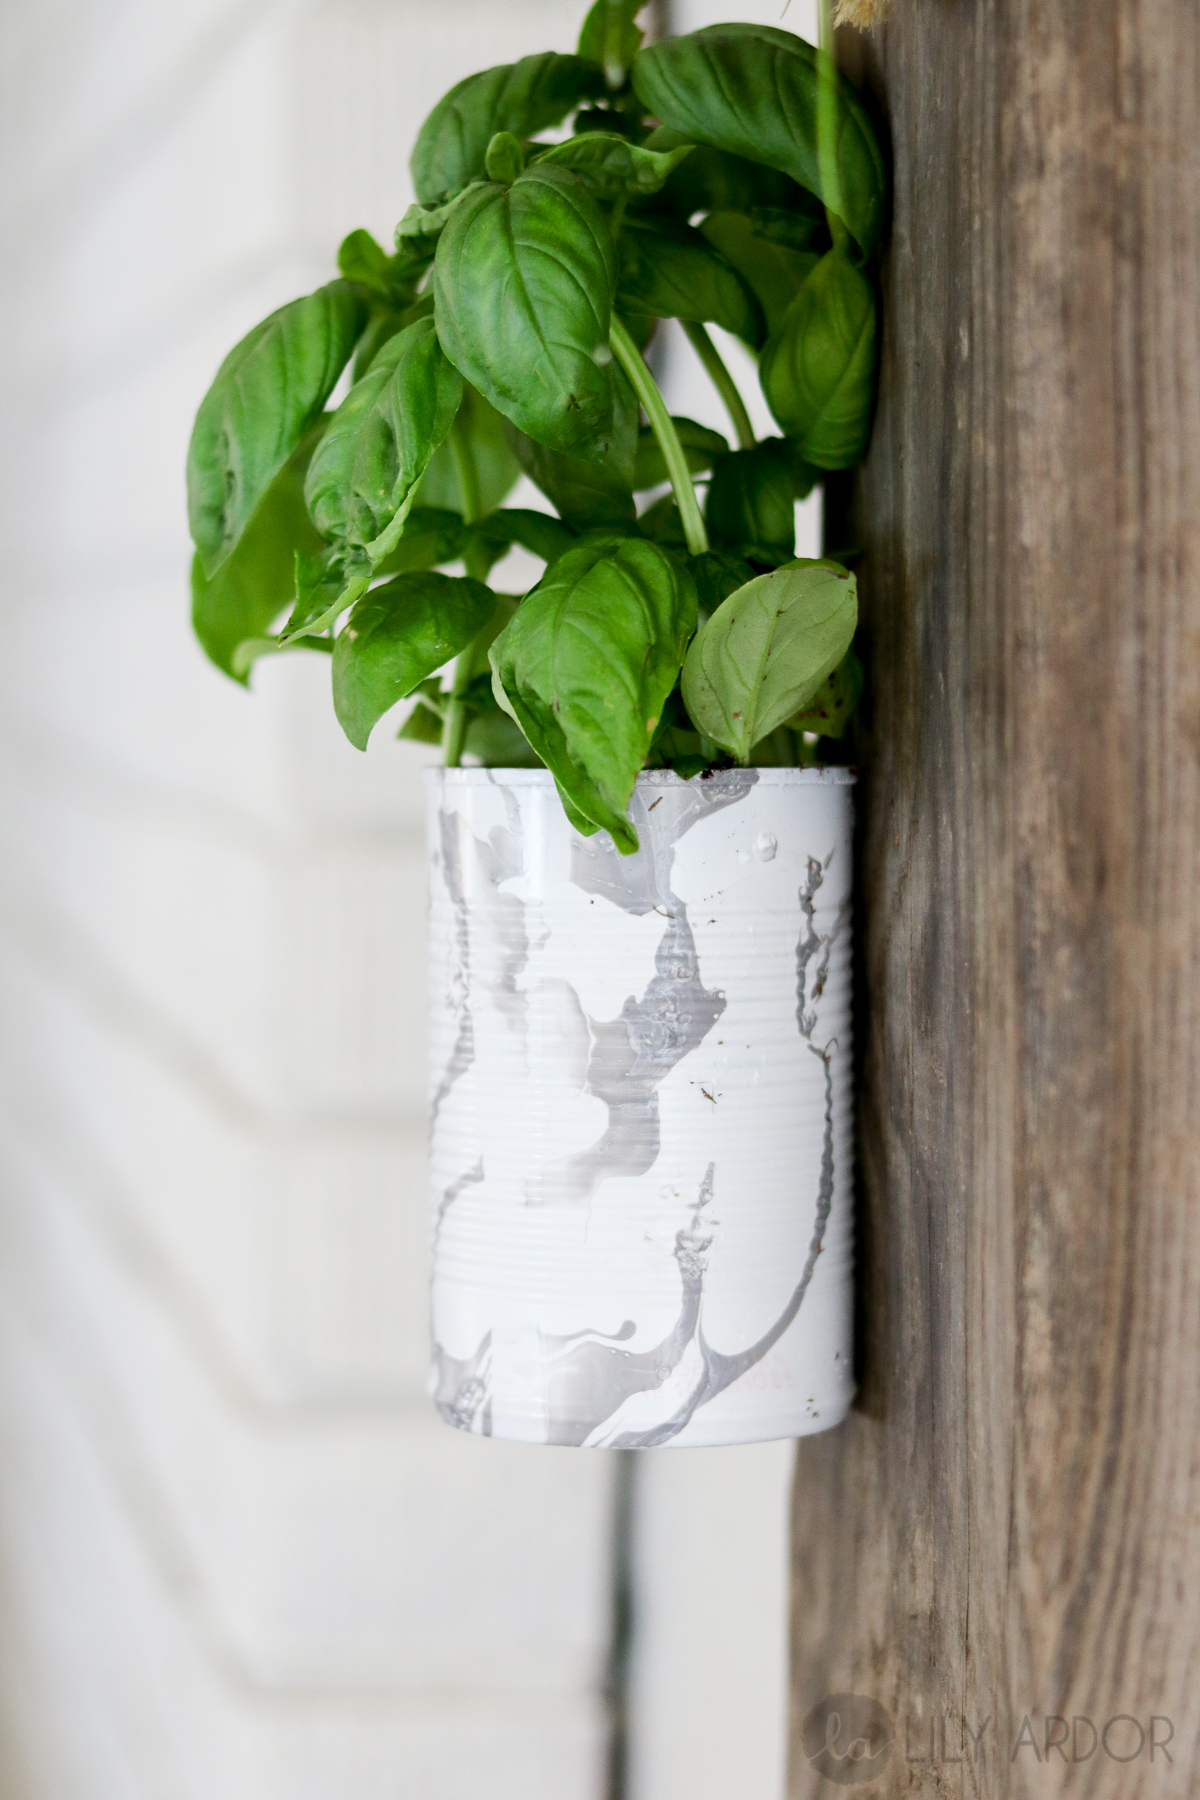 Herb Wall Diy Herb Wall Planter Compact And Recycled Lilyardor